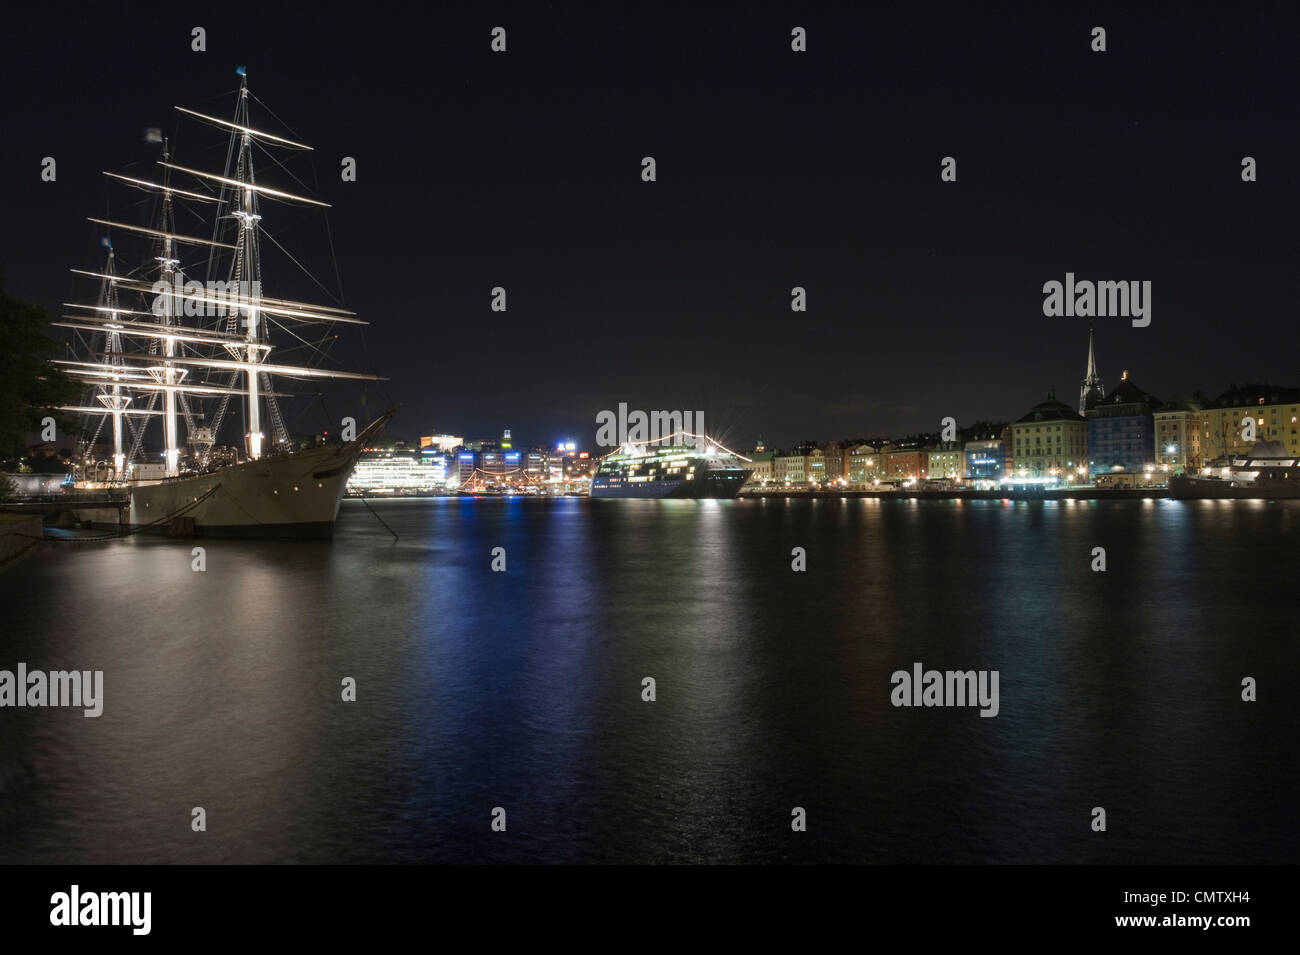 Sailing ship in urban environment - Stock Image